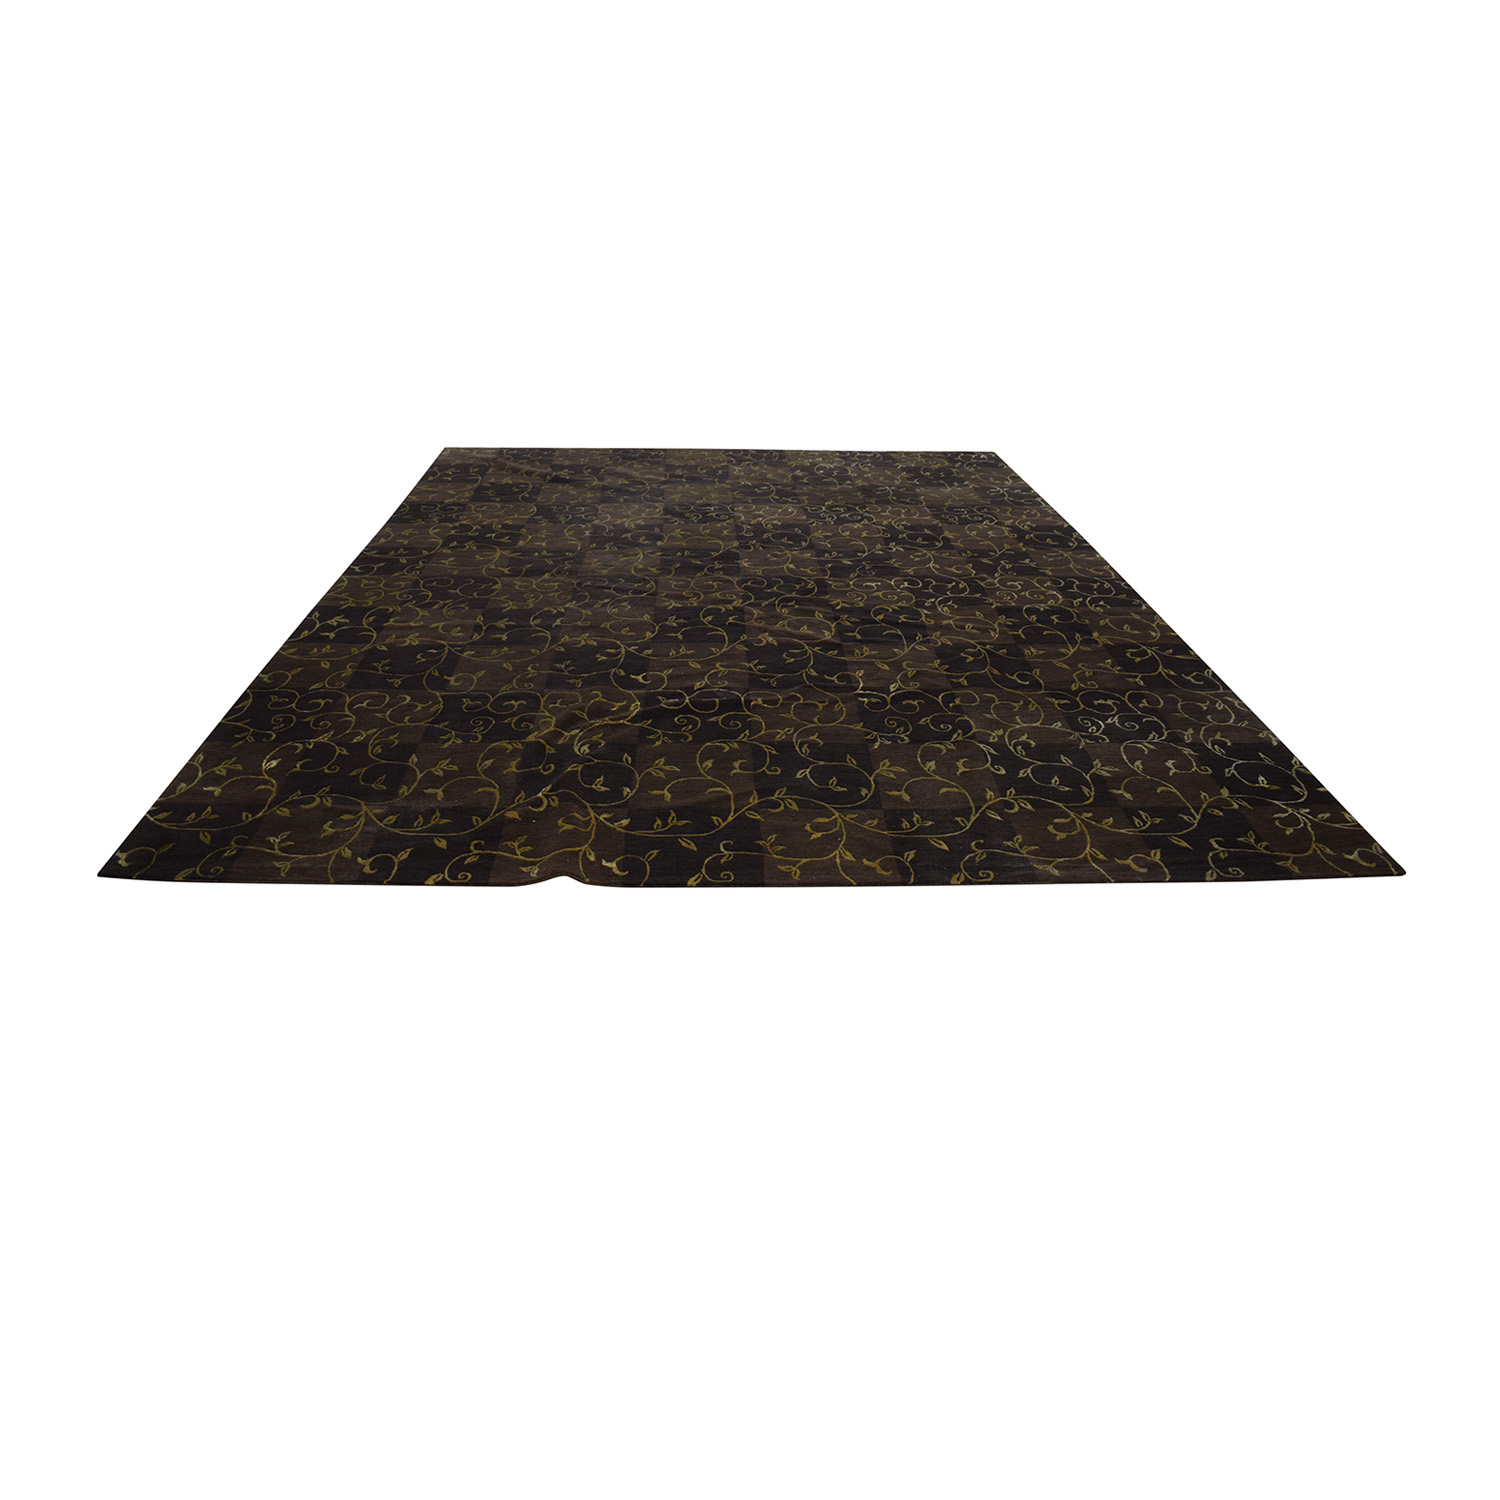 ABC Carpet & Home ABC Carpet & Home Brown and Gold Scroll Design Rug dimensions